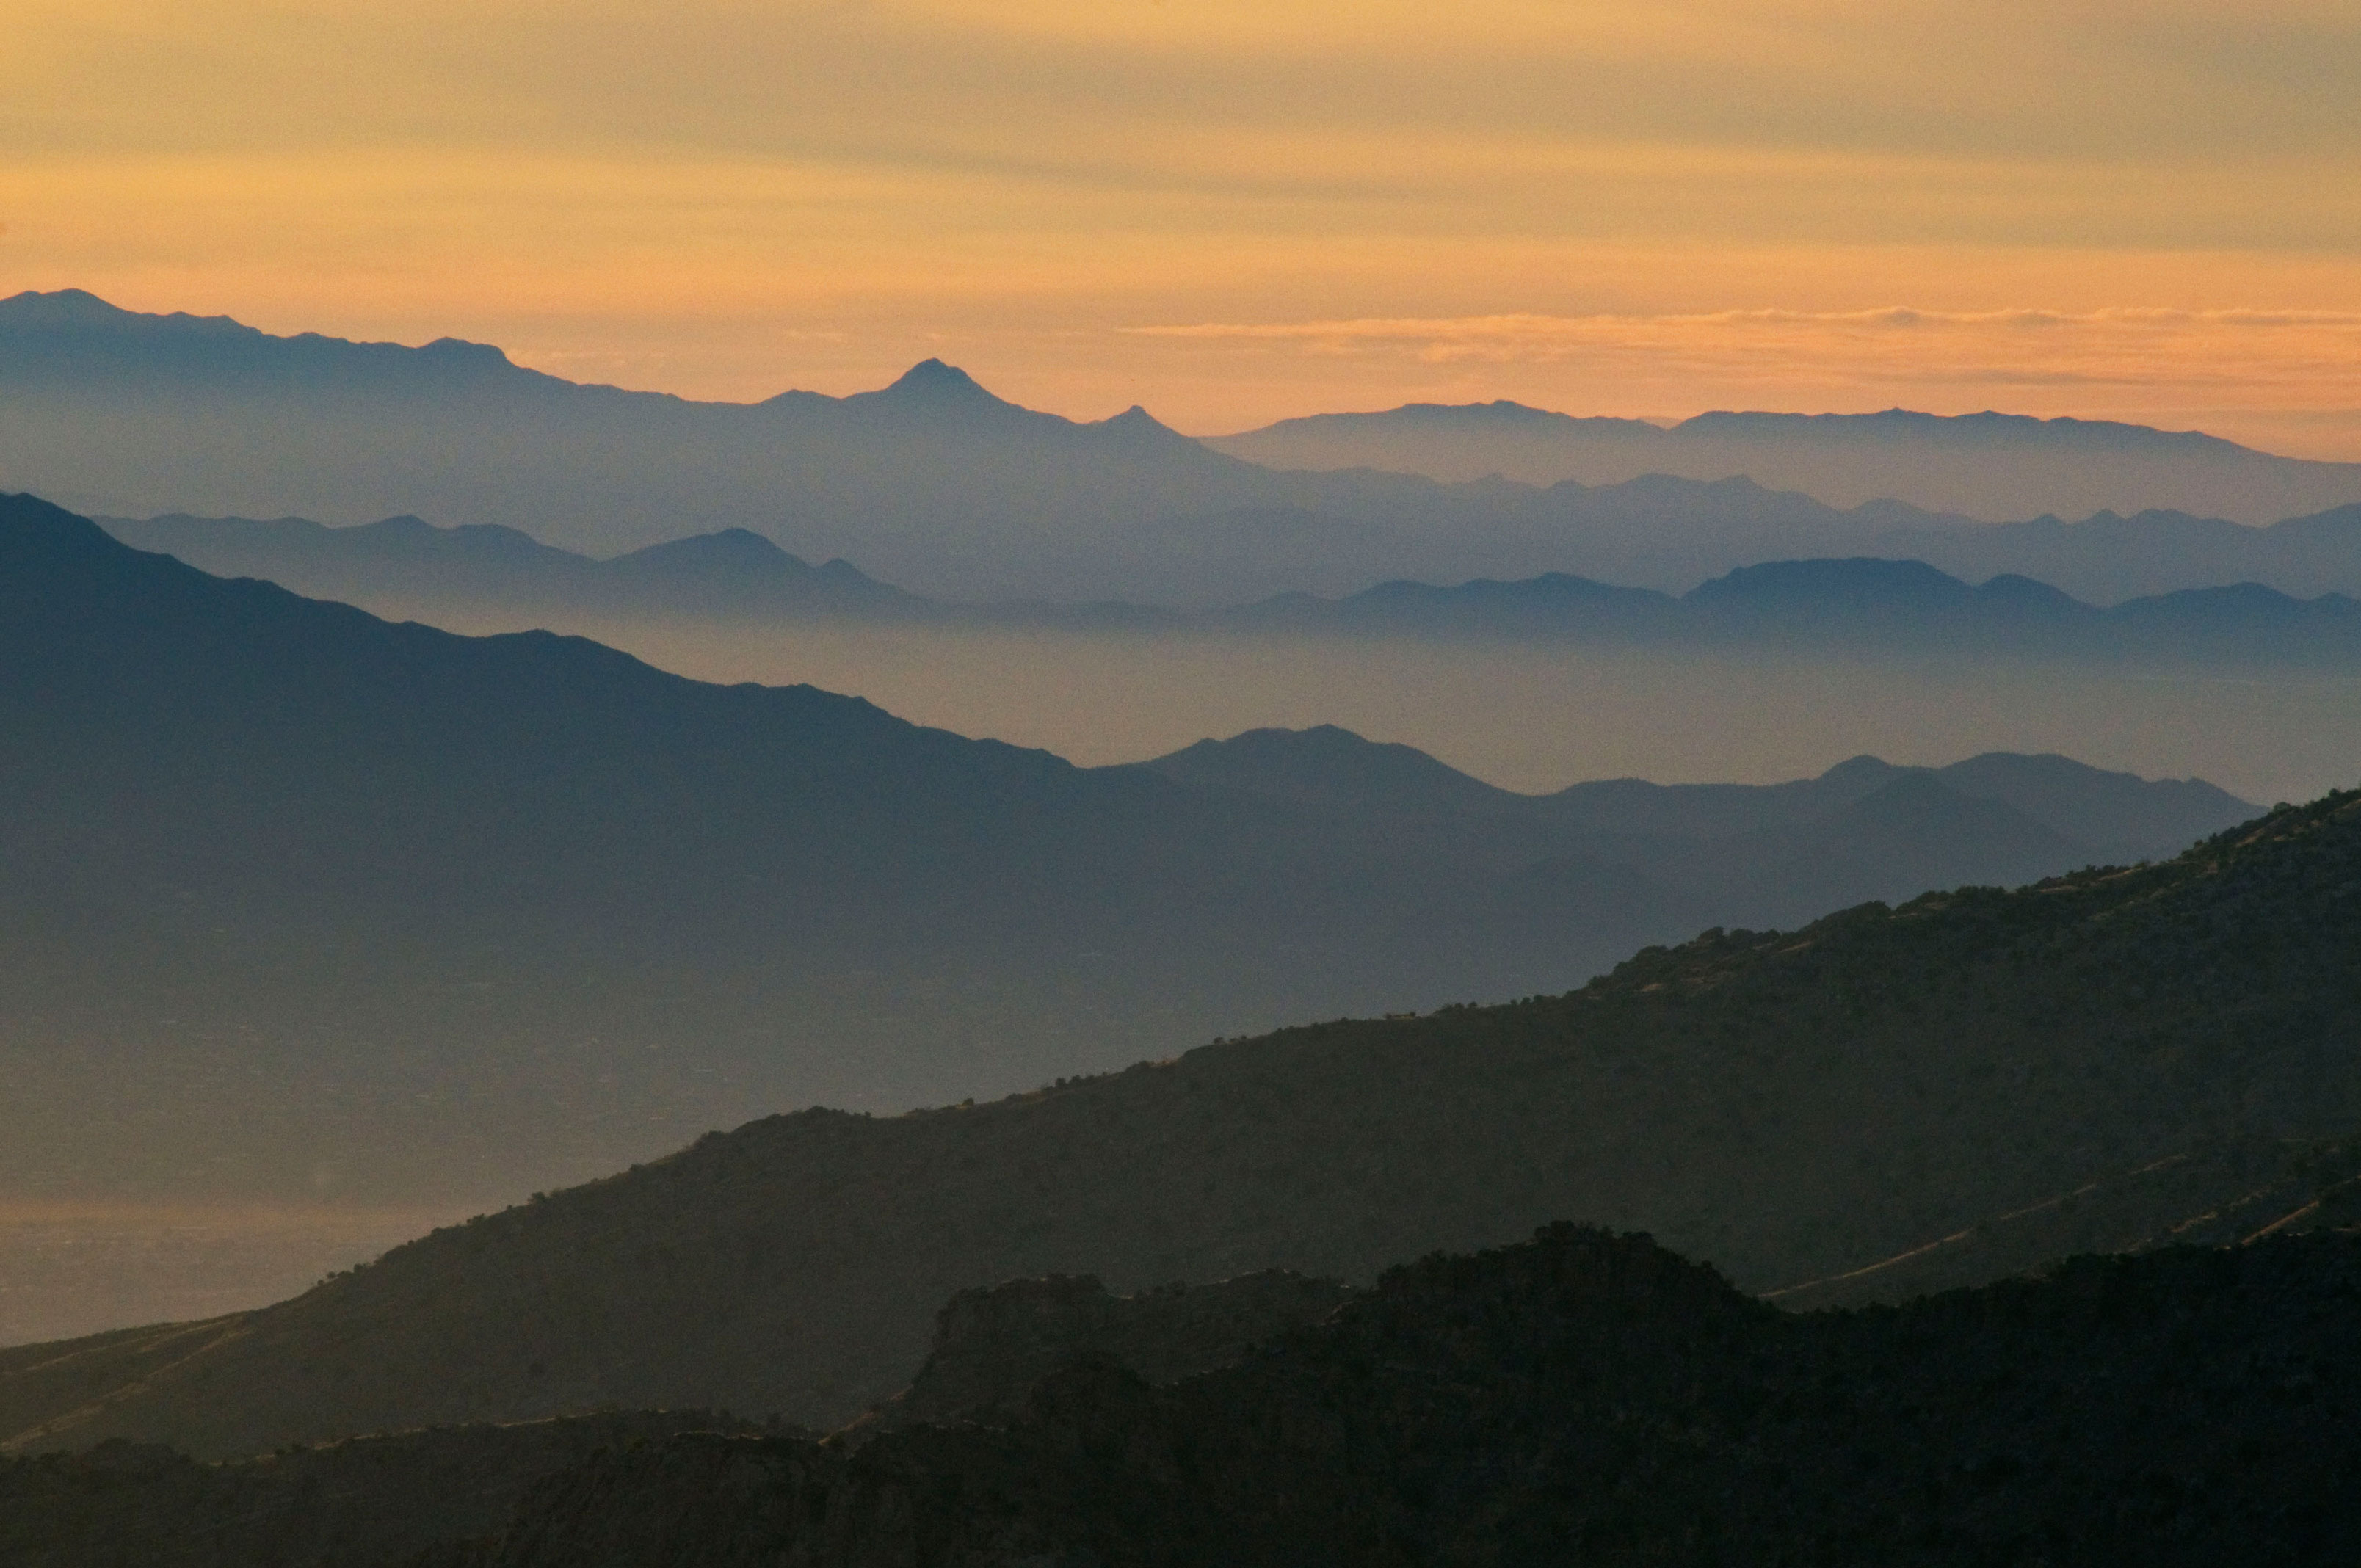 From Windy Point high in the Catalina Mts. looking southwest toward the Tucson Mts. and beyond